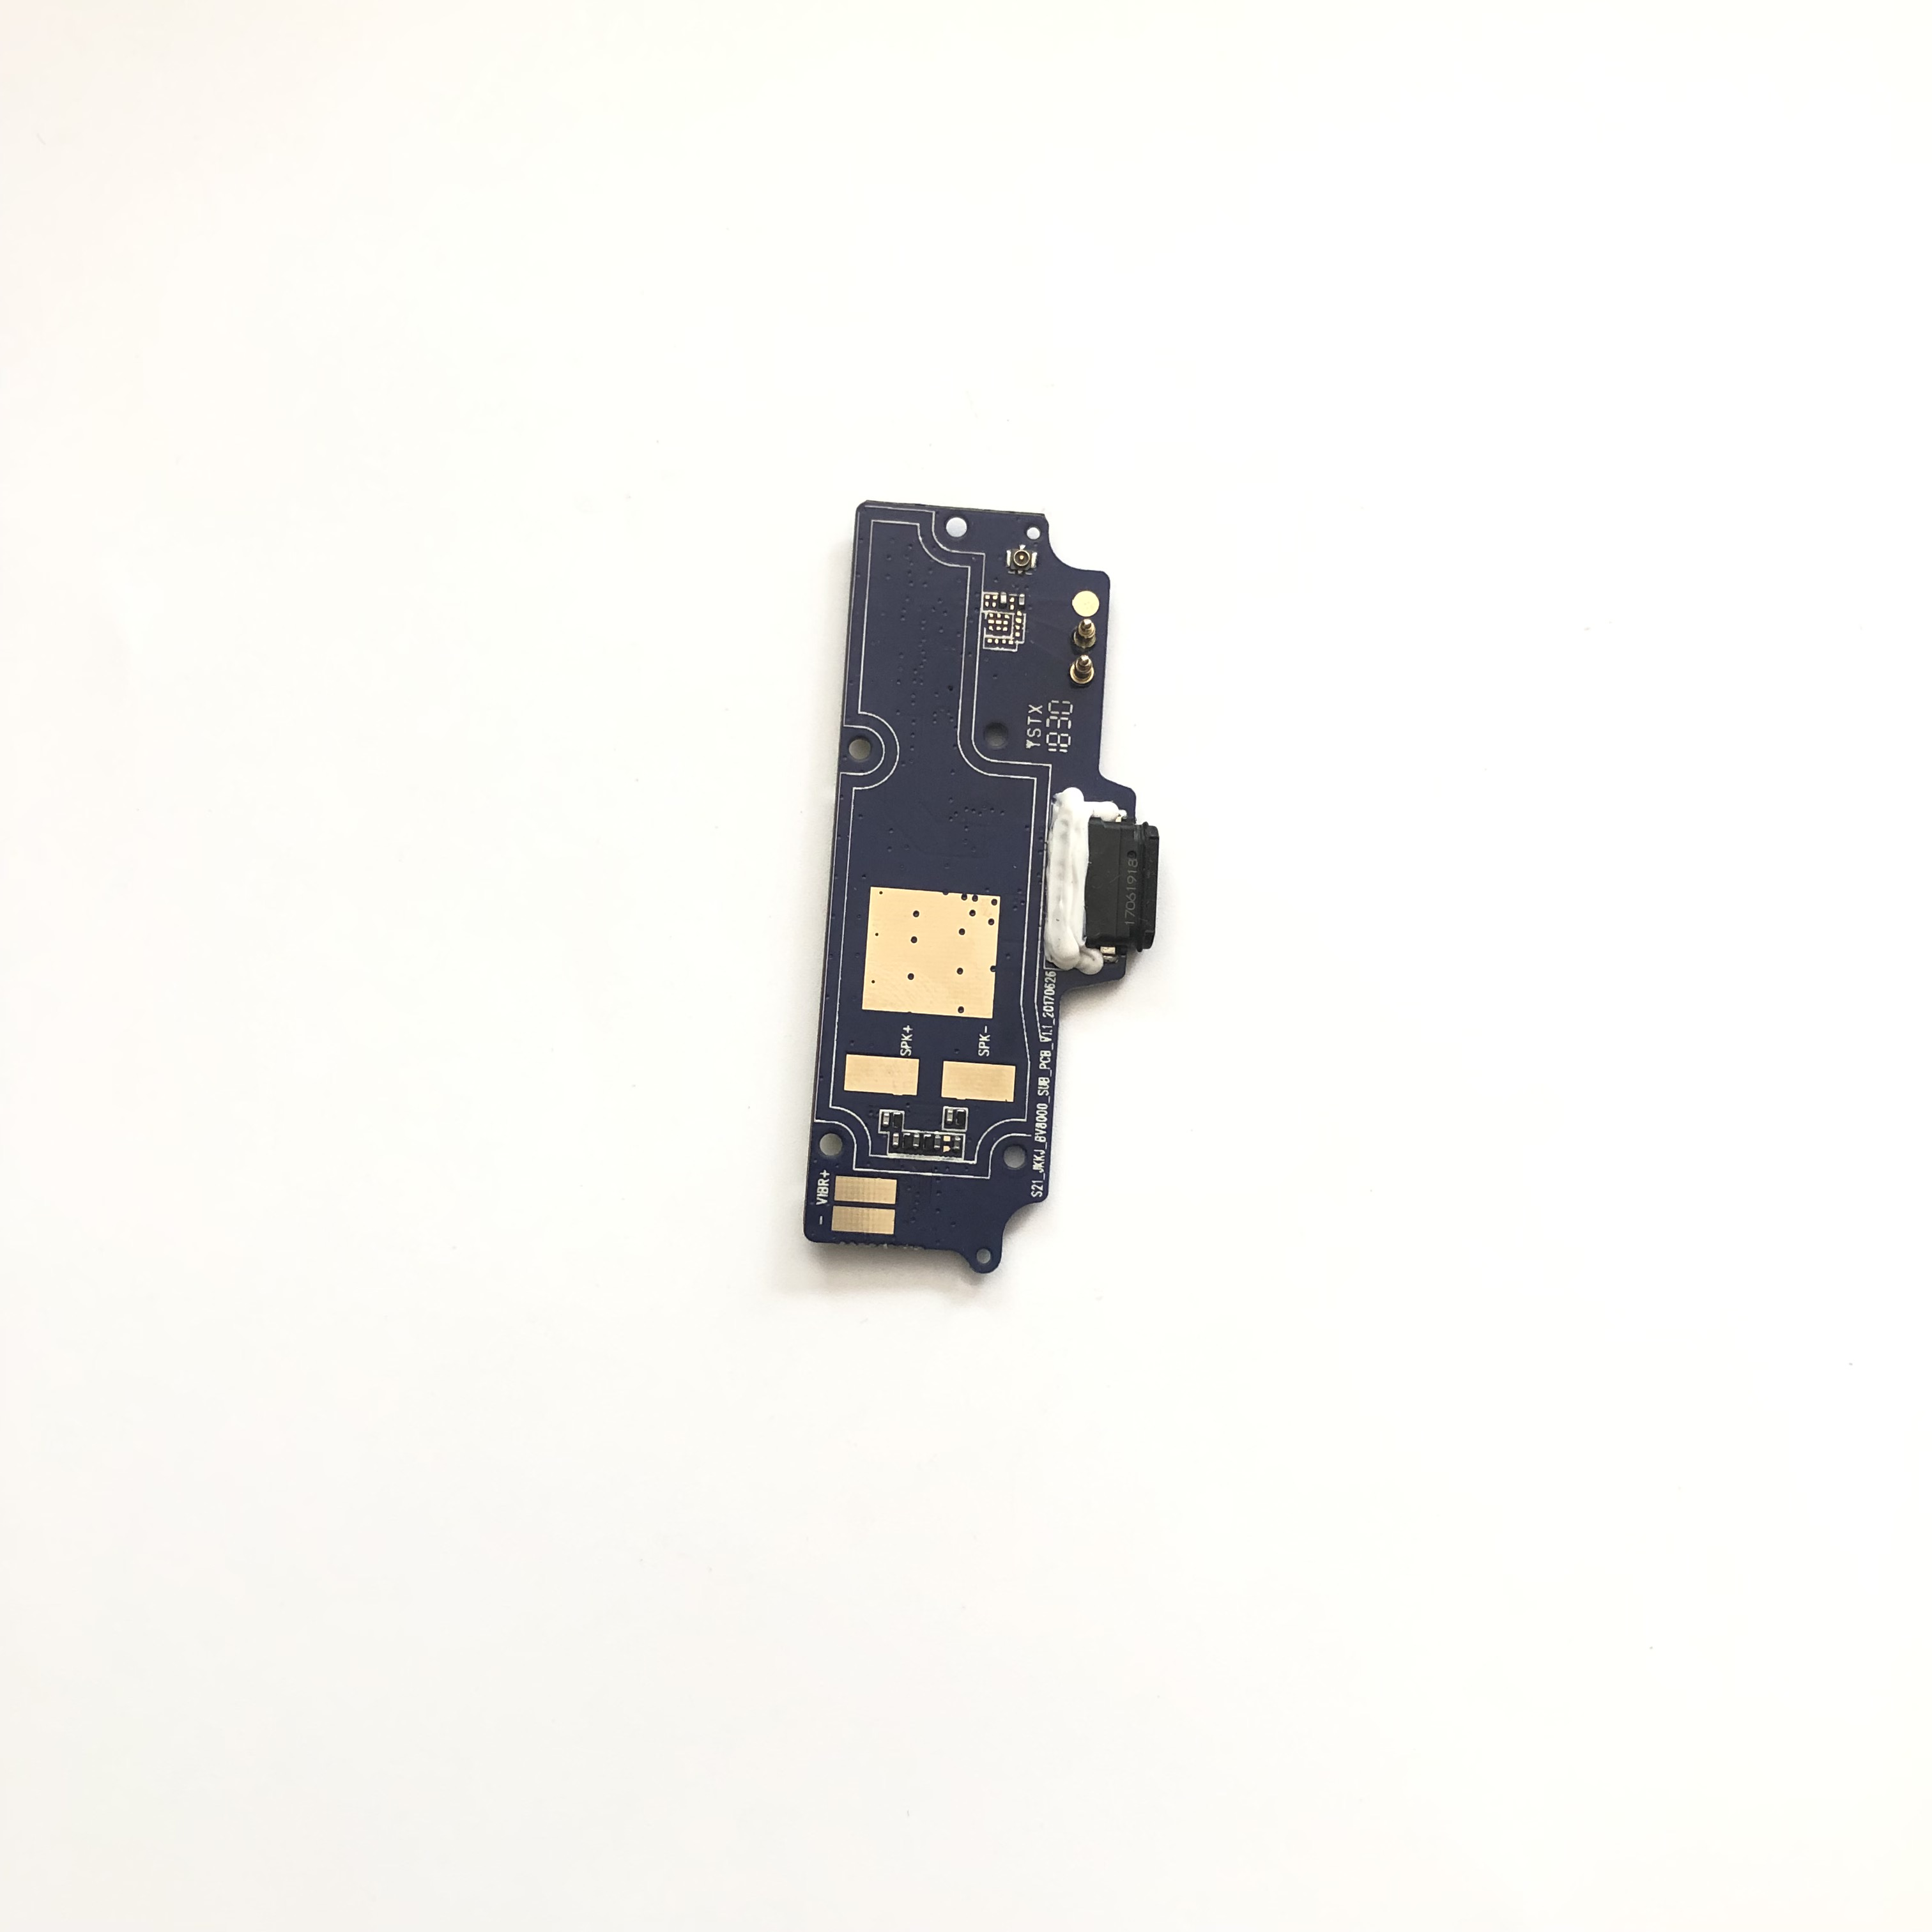 New Blackview BV8000 Original USB Plug Charge Board For Blackview BV8000 Pro MTK6757 Octa Core Free Shipping + Tracking Number